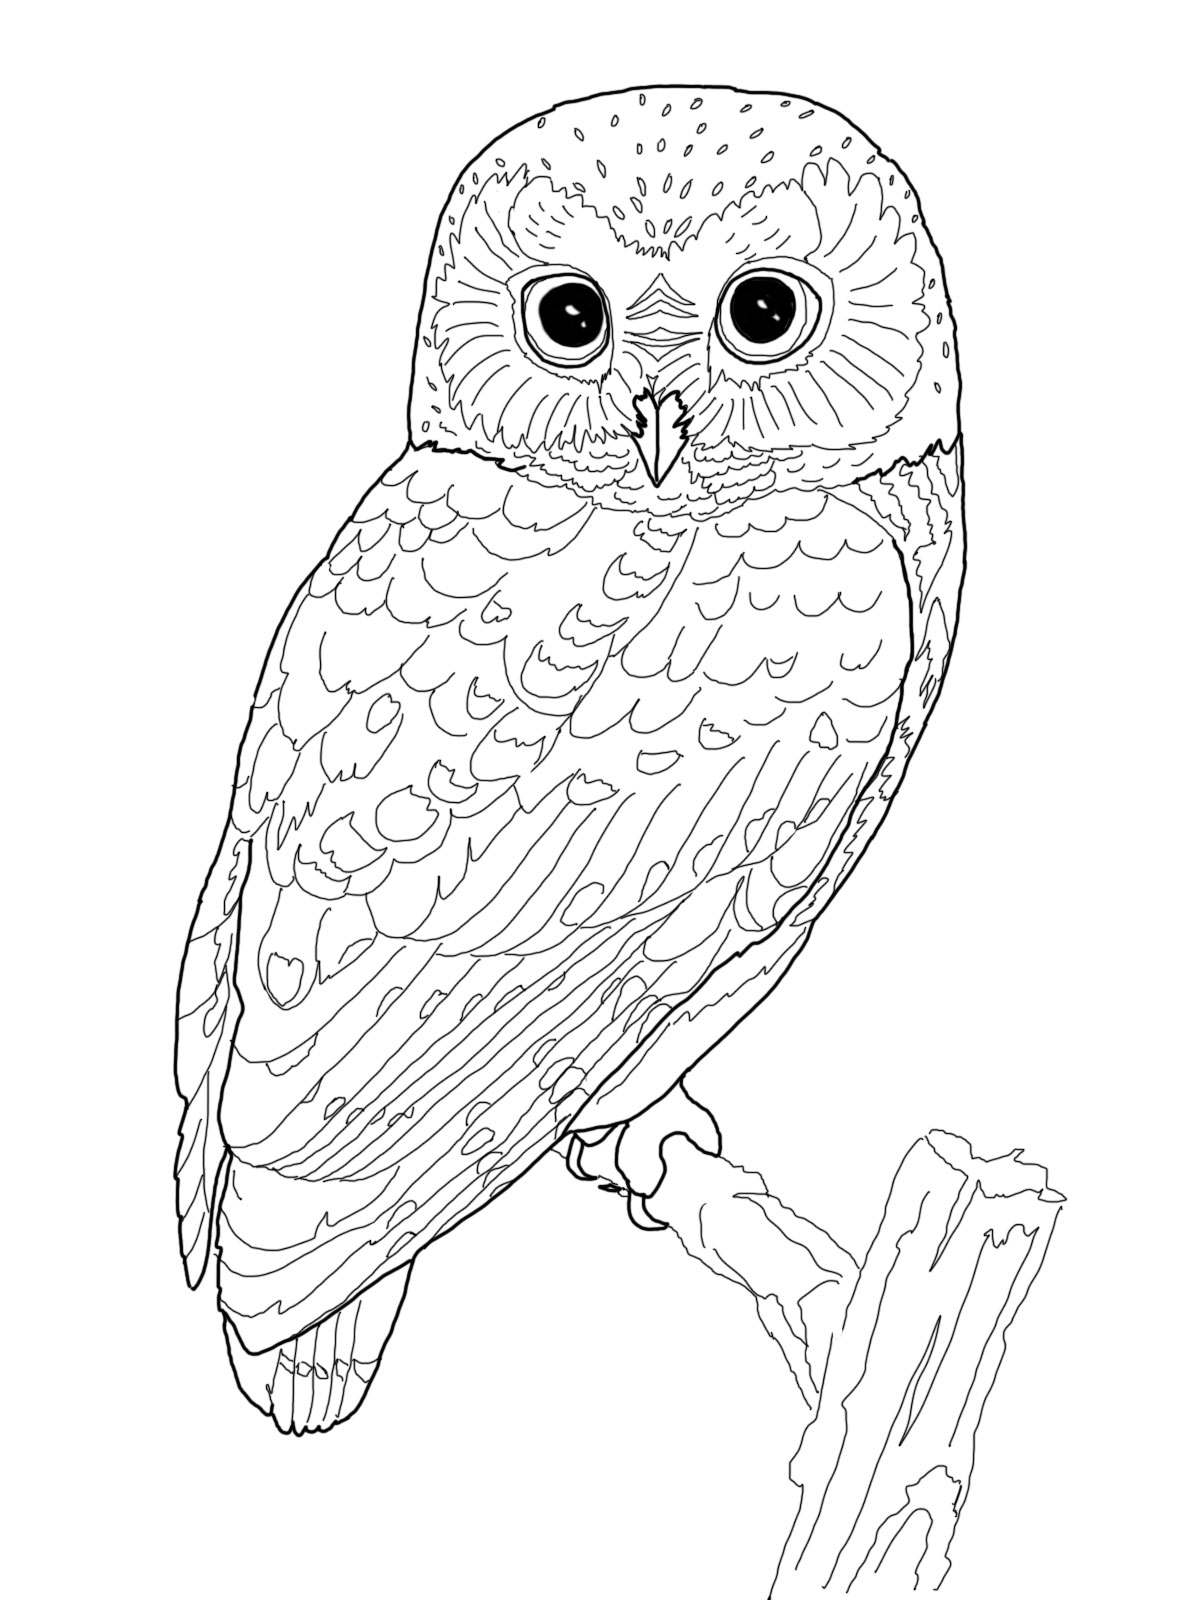 coloring pictures birds birds coloring pages to knowing the kind of birds name coloring birds pictures